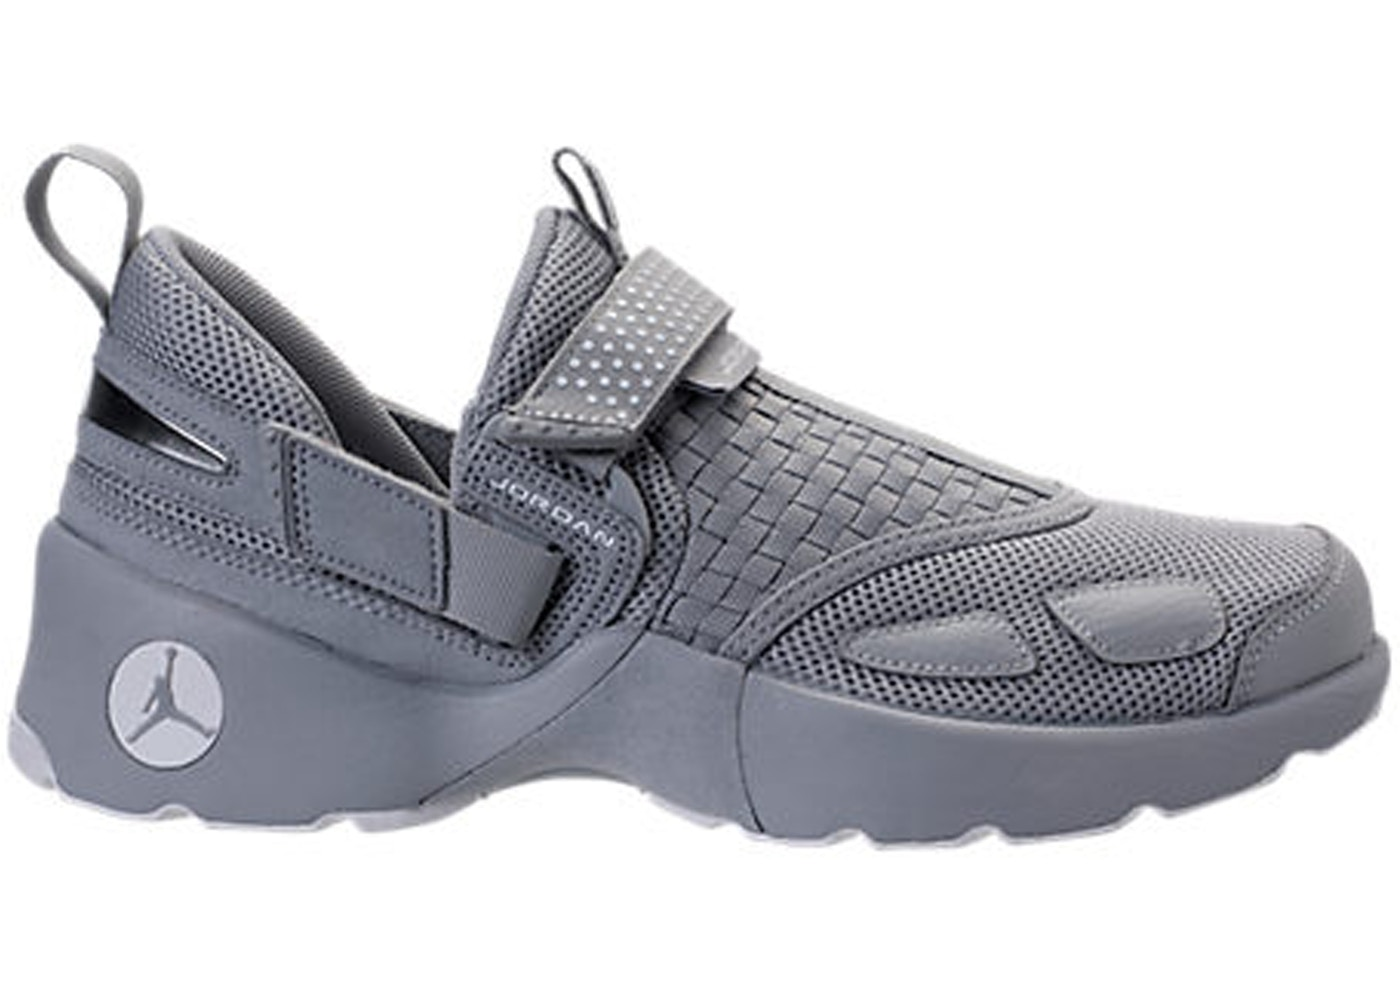 abcb2ee0cd3786 Jordan Trunner LX Wolf Grey - 897992-003